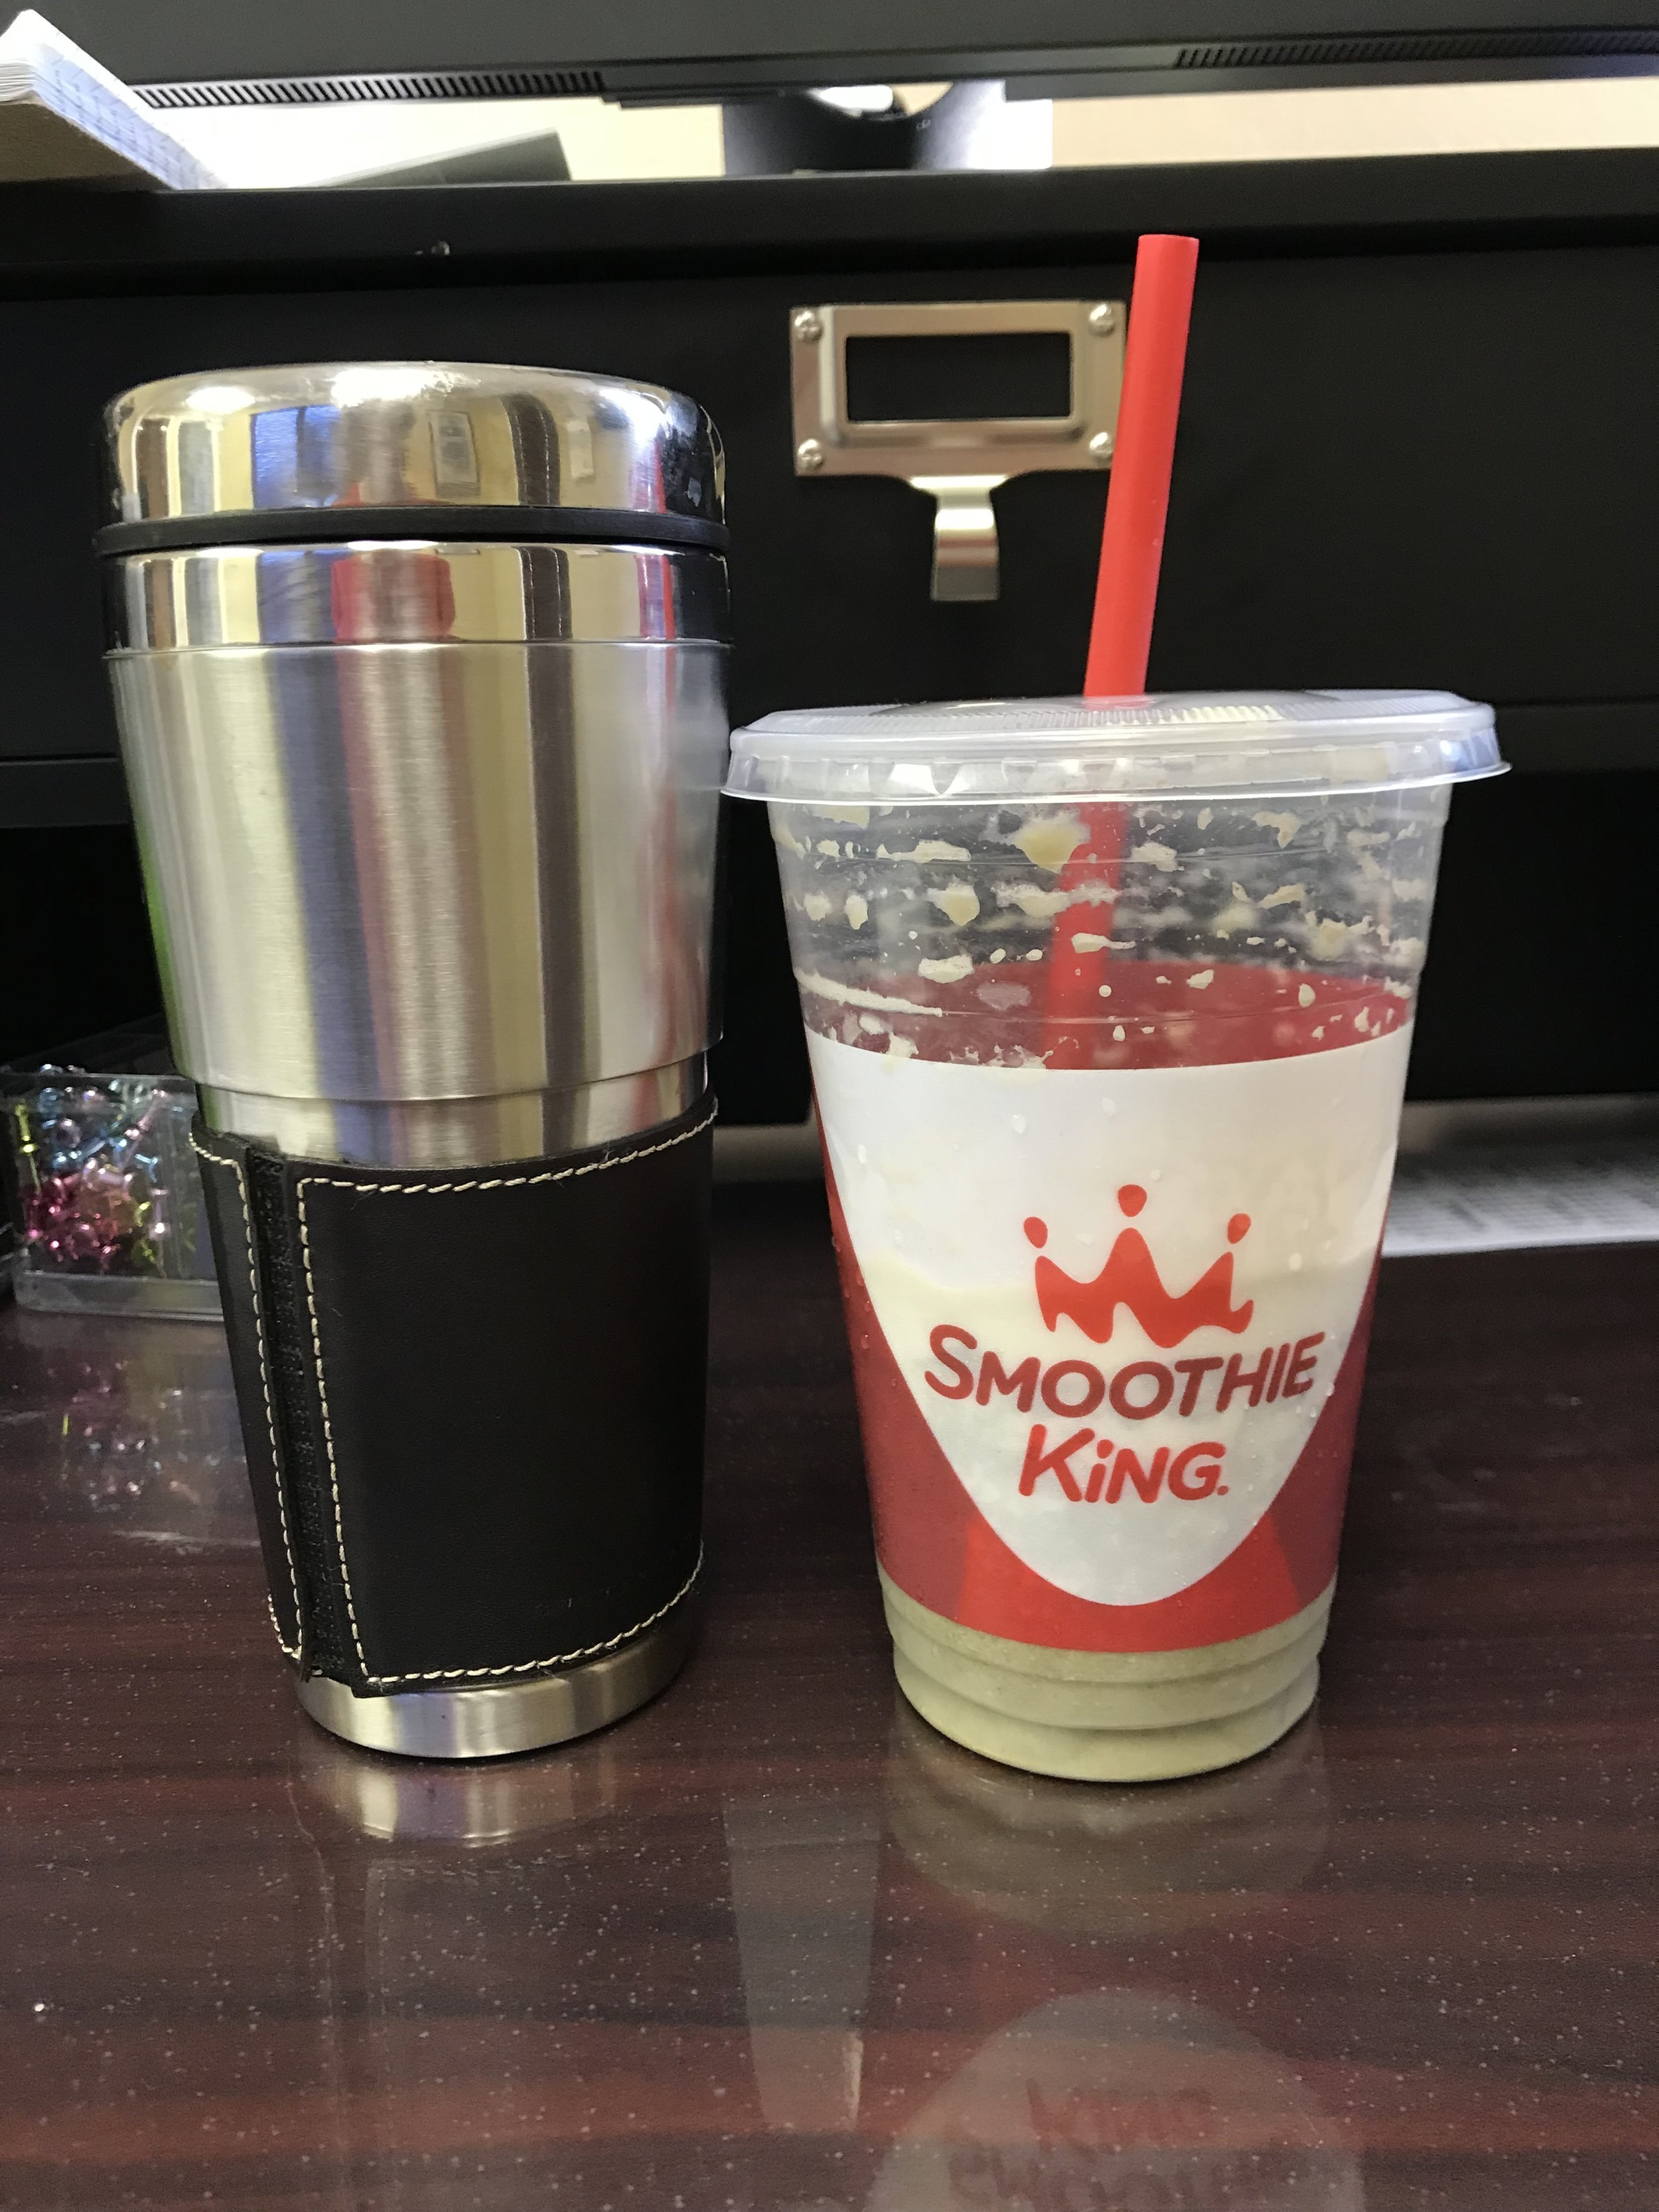 BREAKFAST - Smoothie King's Original High Protein, 20 oz, Chocolate Smoothie. I requested no dates, swapped the milk for almond milk, added spinach and fiber enhancer. Of course, can't forget coffee with Half and Half.